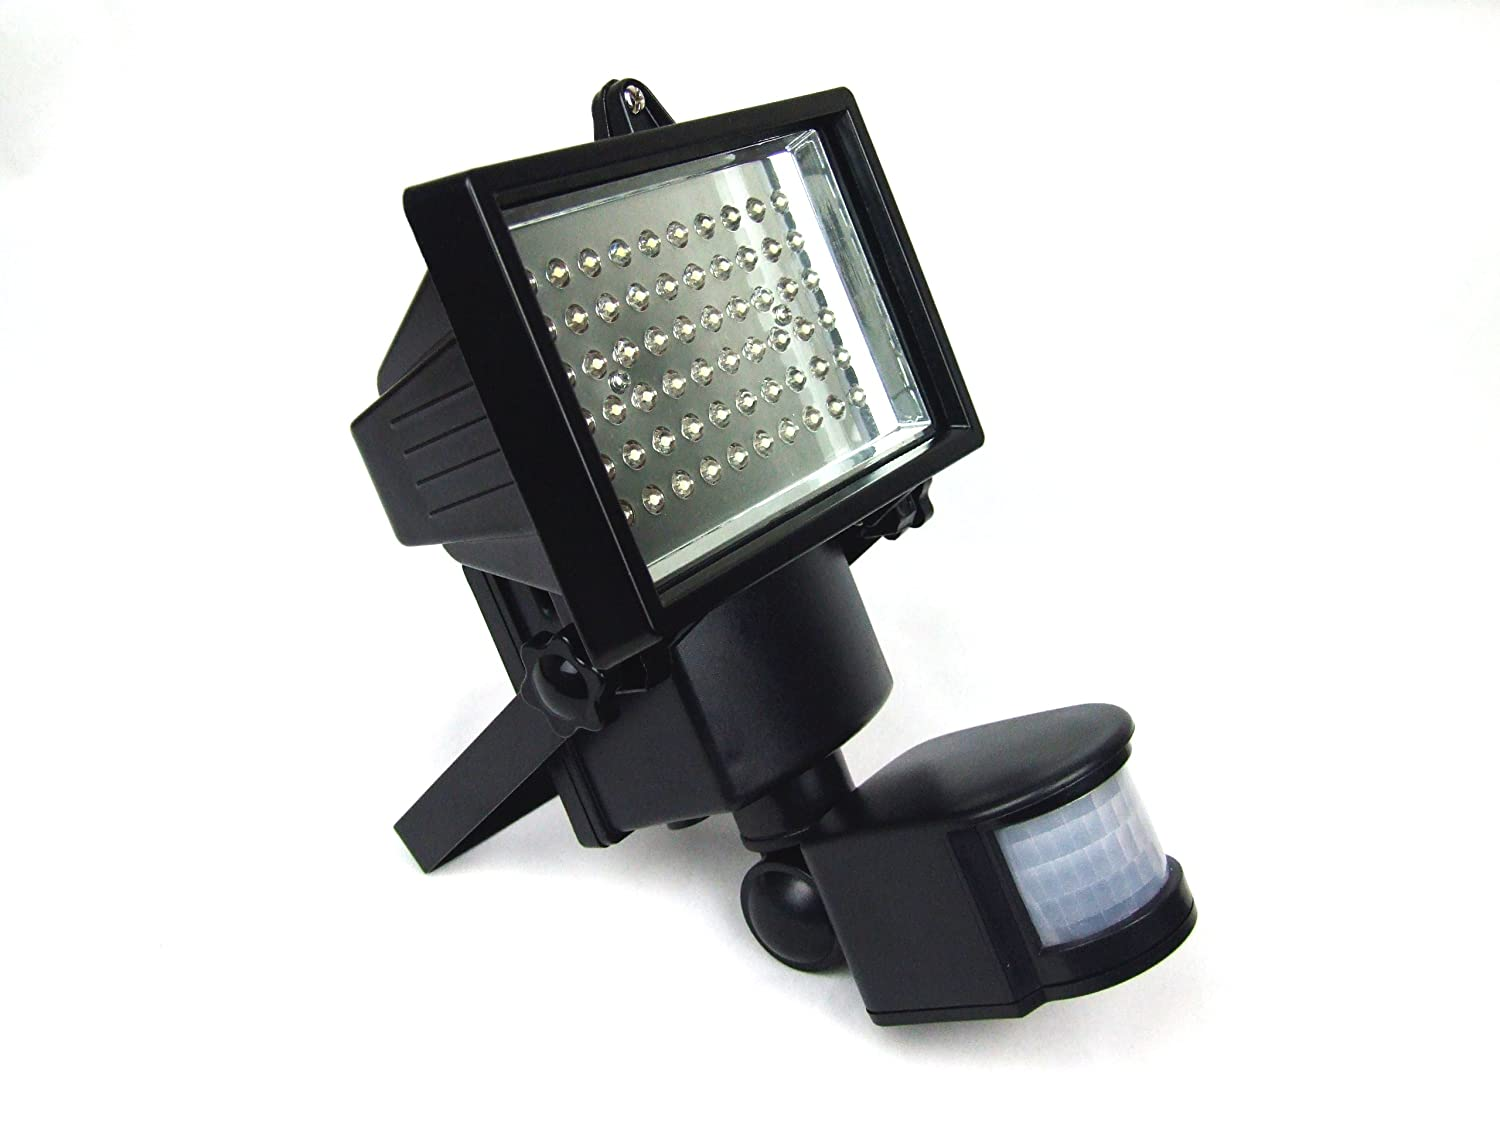 PestExpel 60 Super Bright LED Rechargeable Solar Power Motion Sensor  Security Light Outdoor Garden: Amazon.co.uk: Lighting